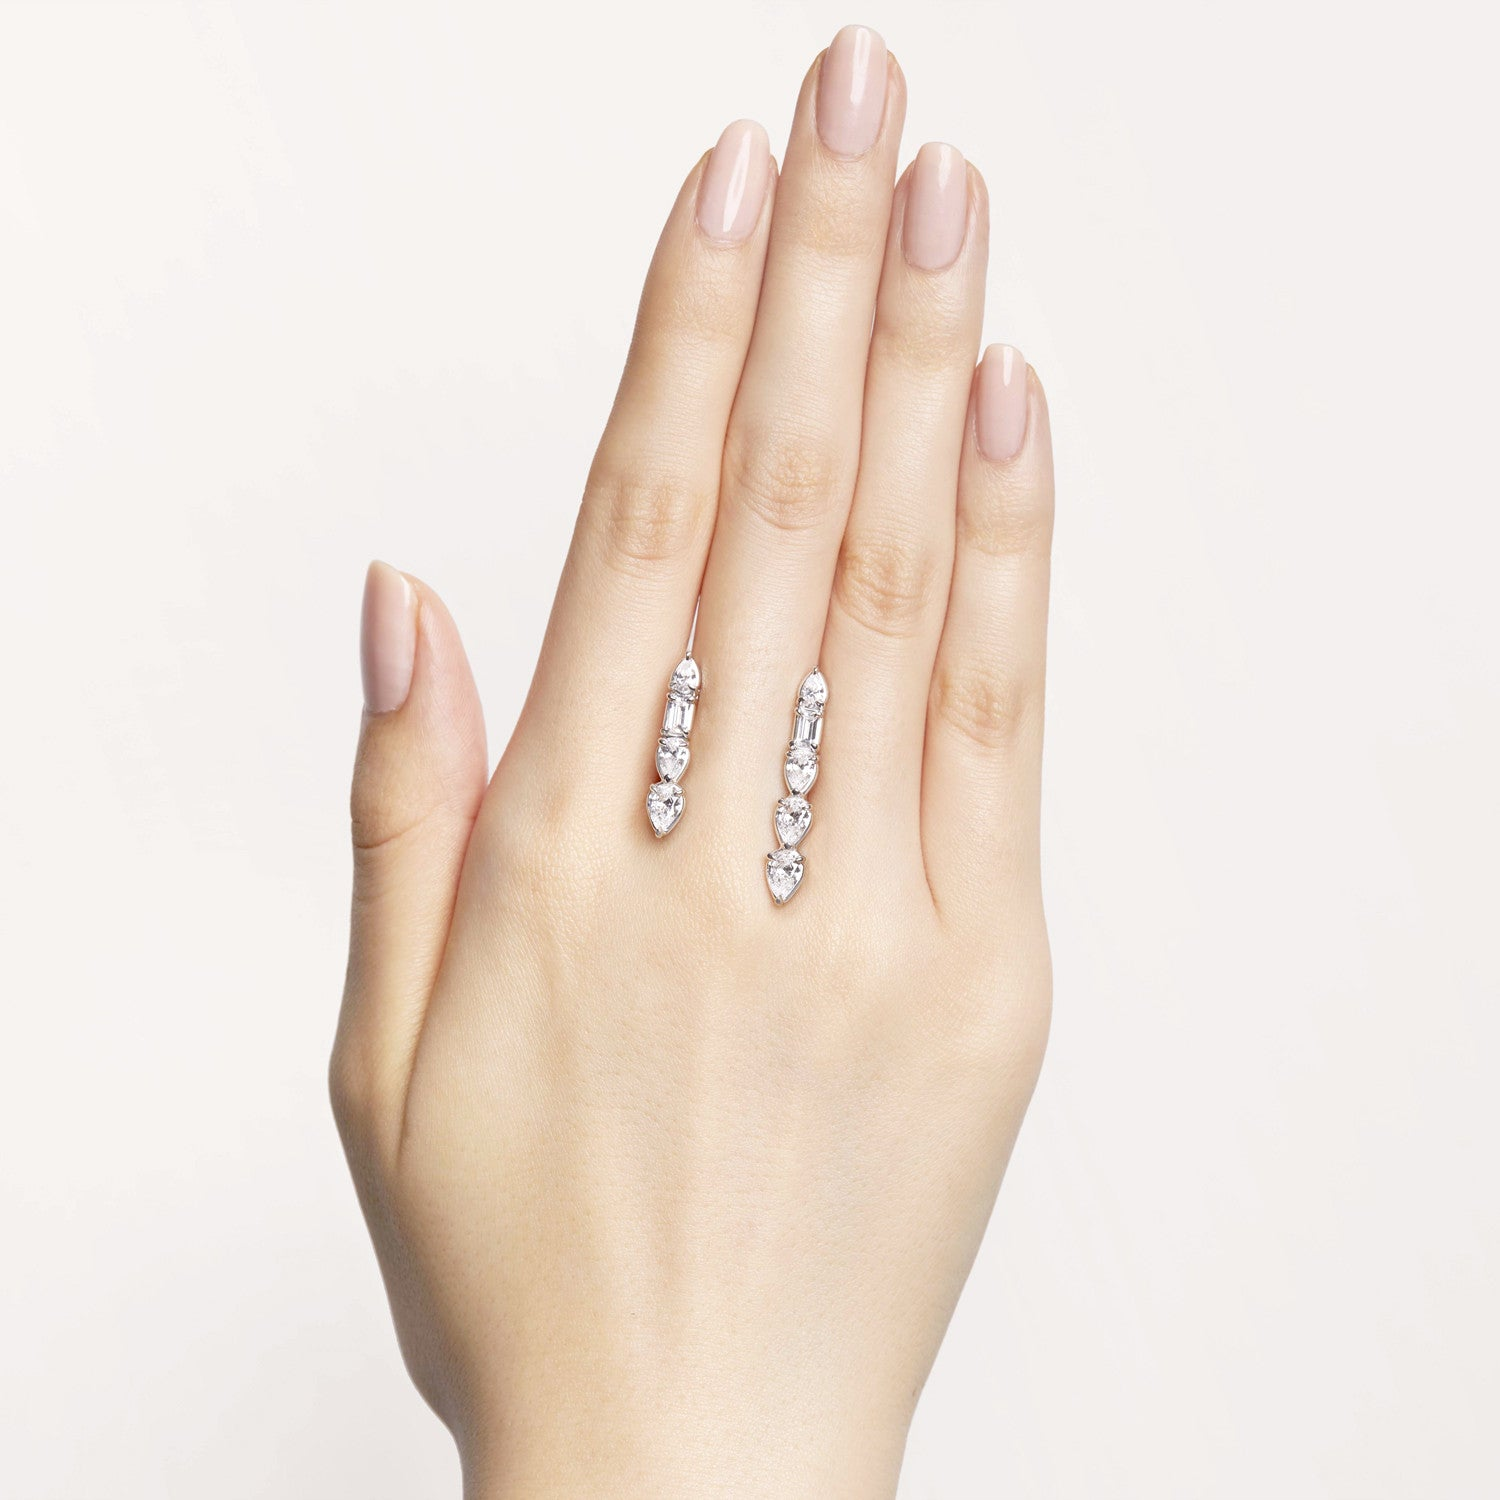 Pear- and baguette-shaped white diamonds floating cuffs on your skin